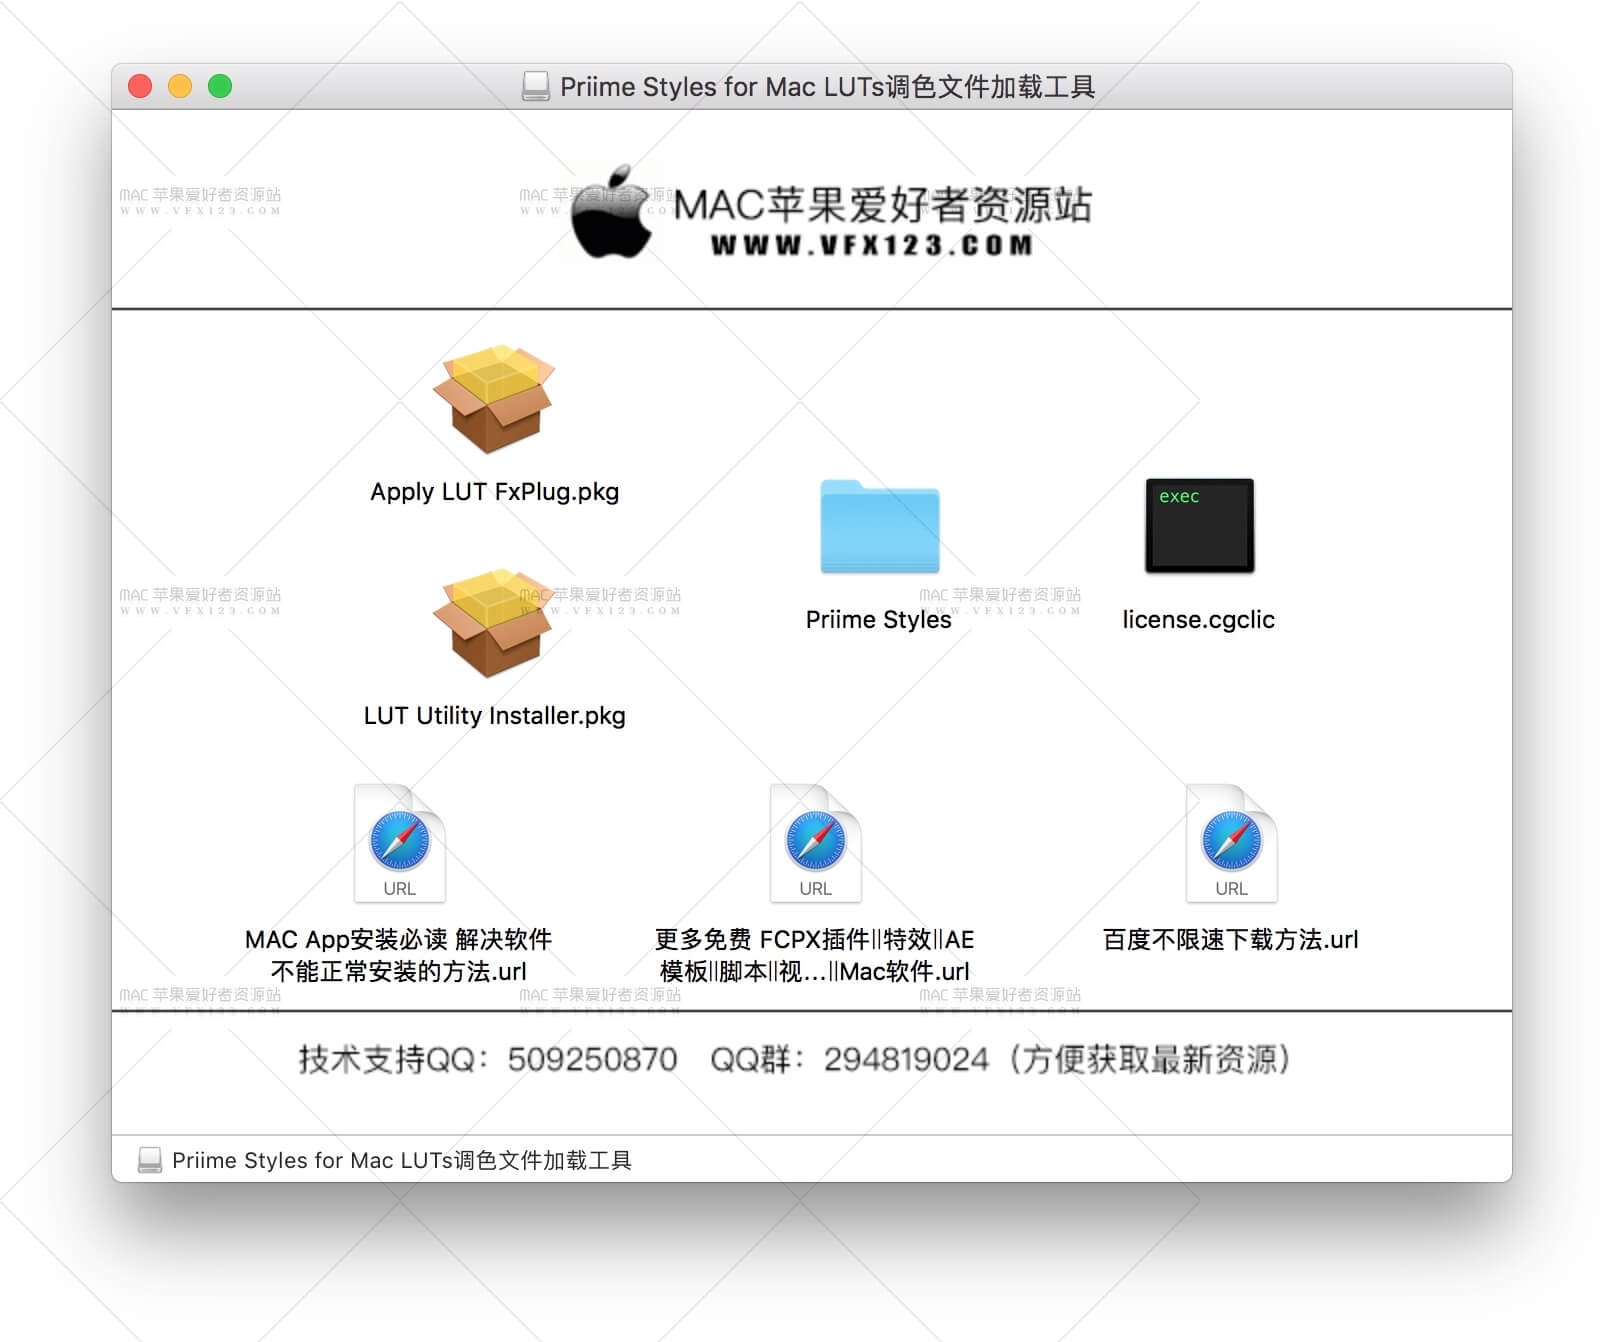 Priime Styles for Mac LUTs调色文件加载工具